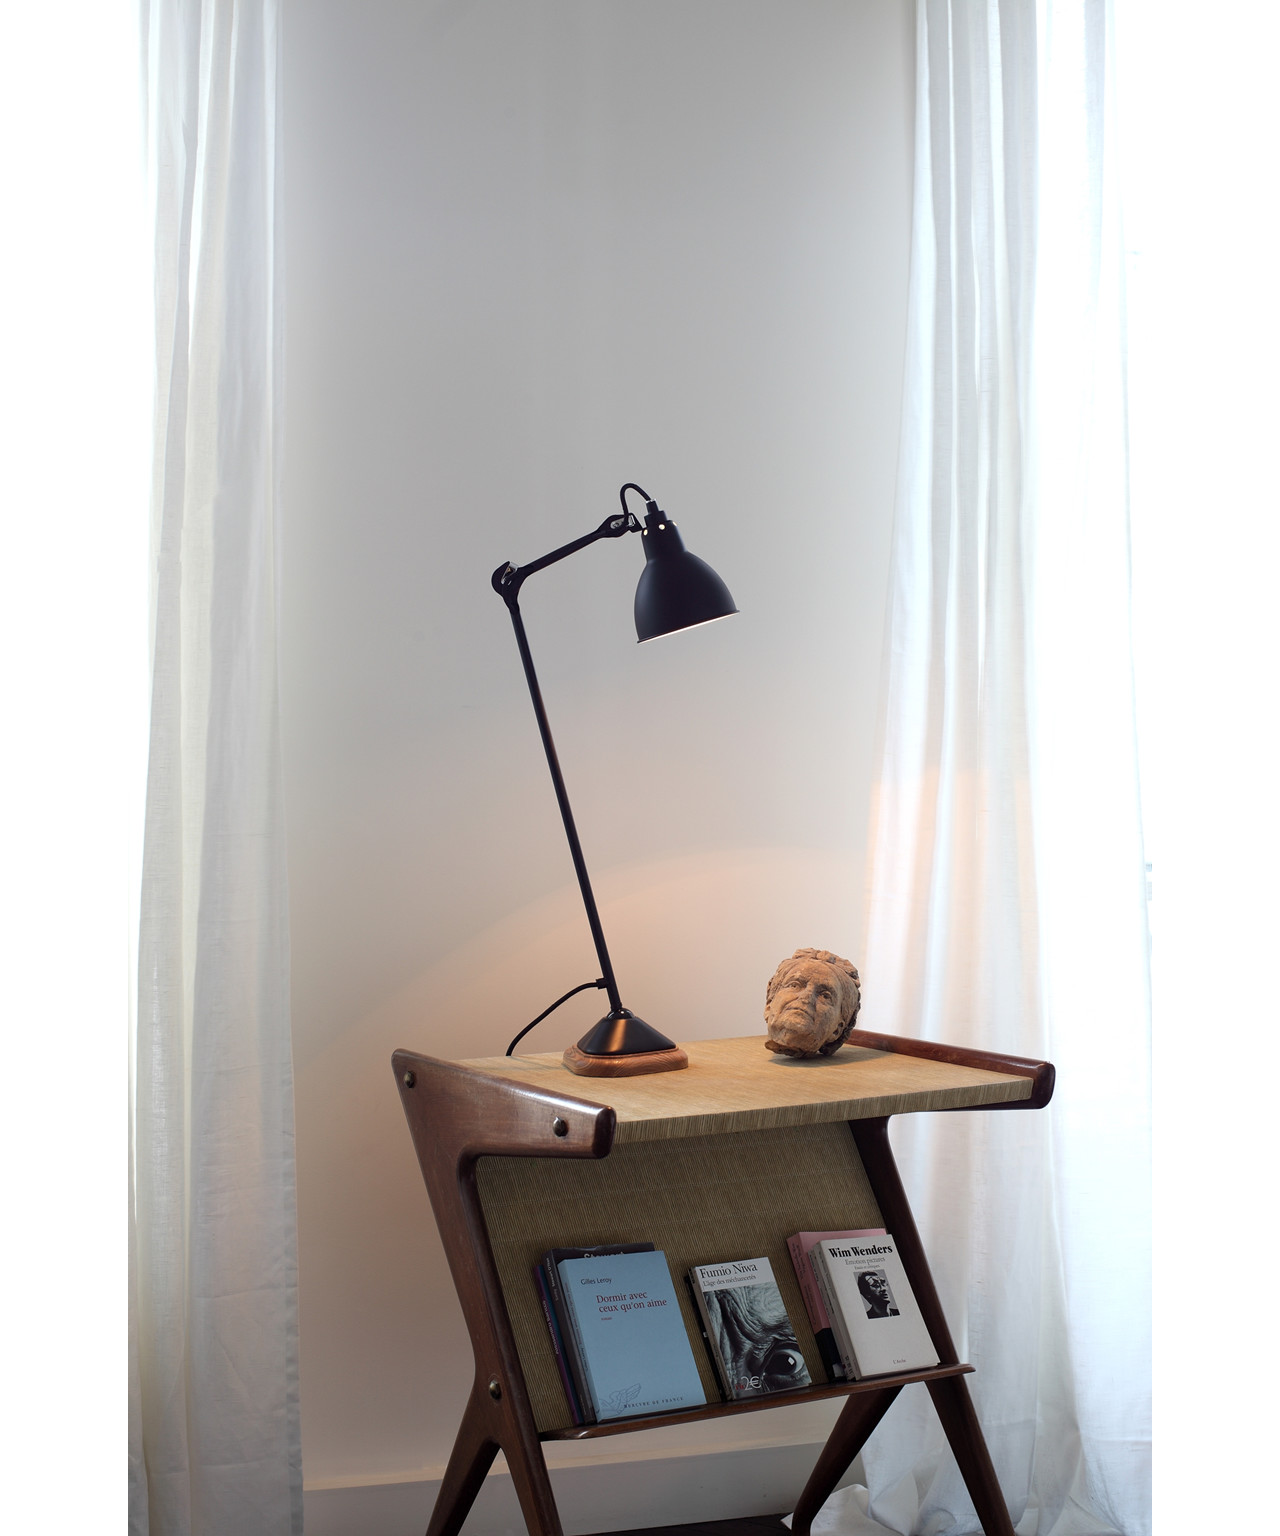 206 Bordlampe Sort - Lampe Gras